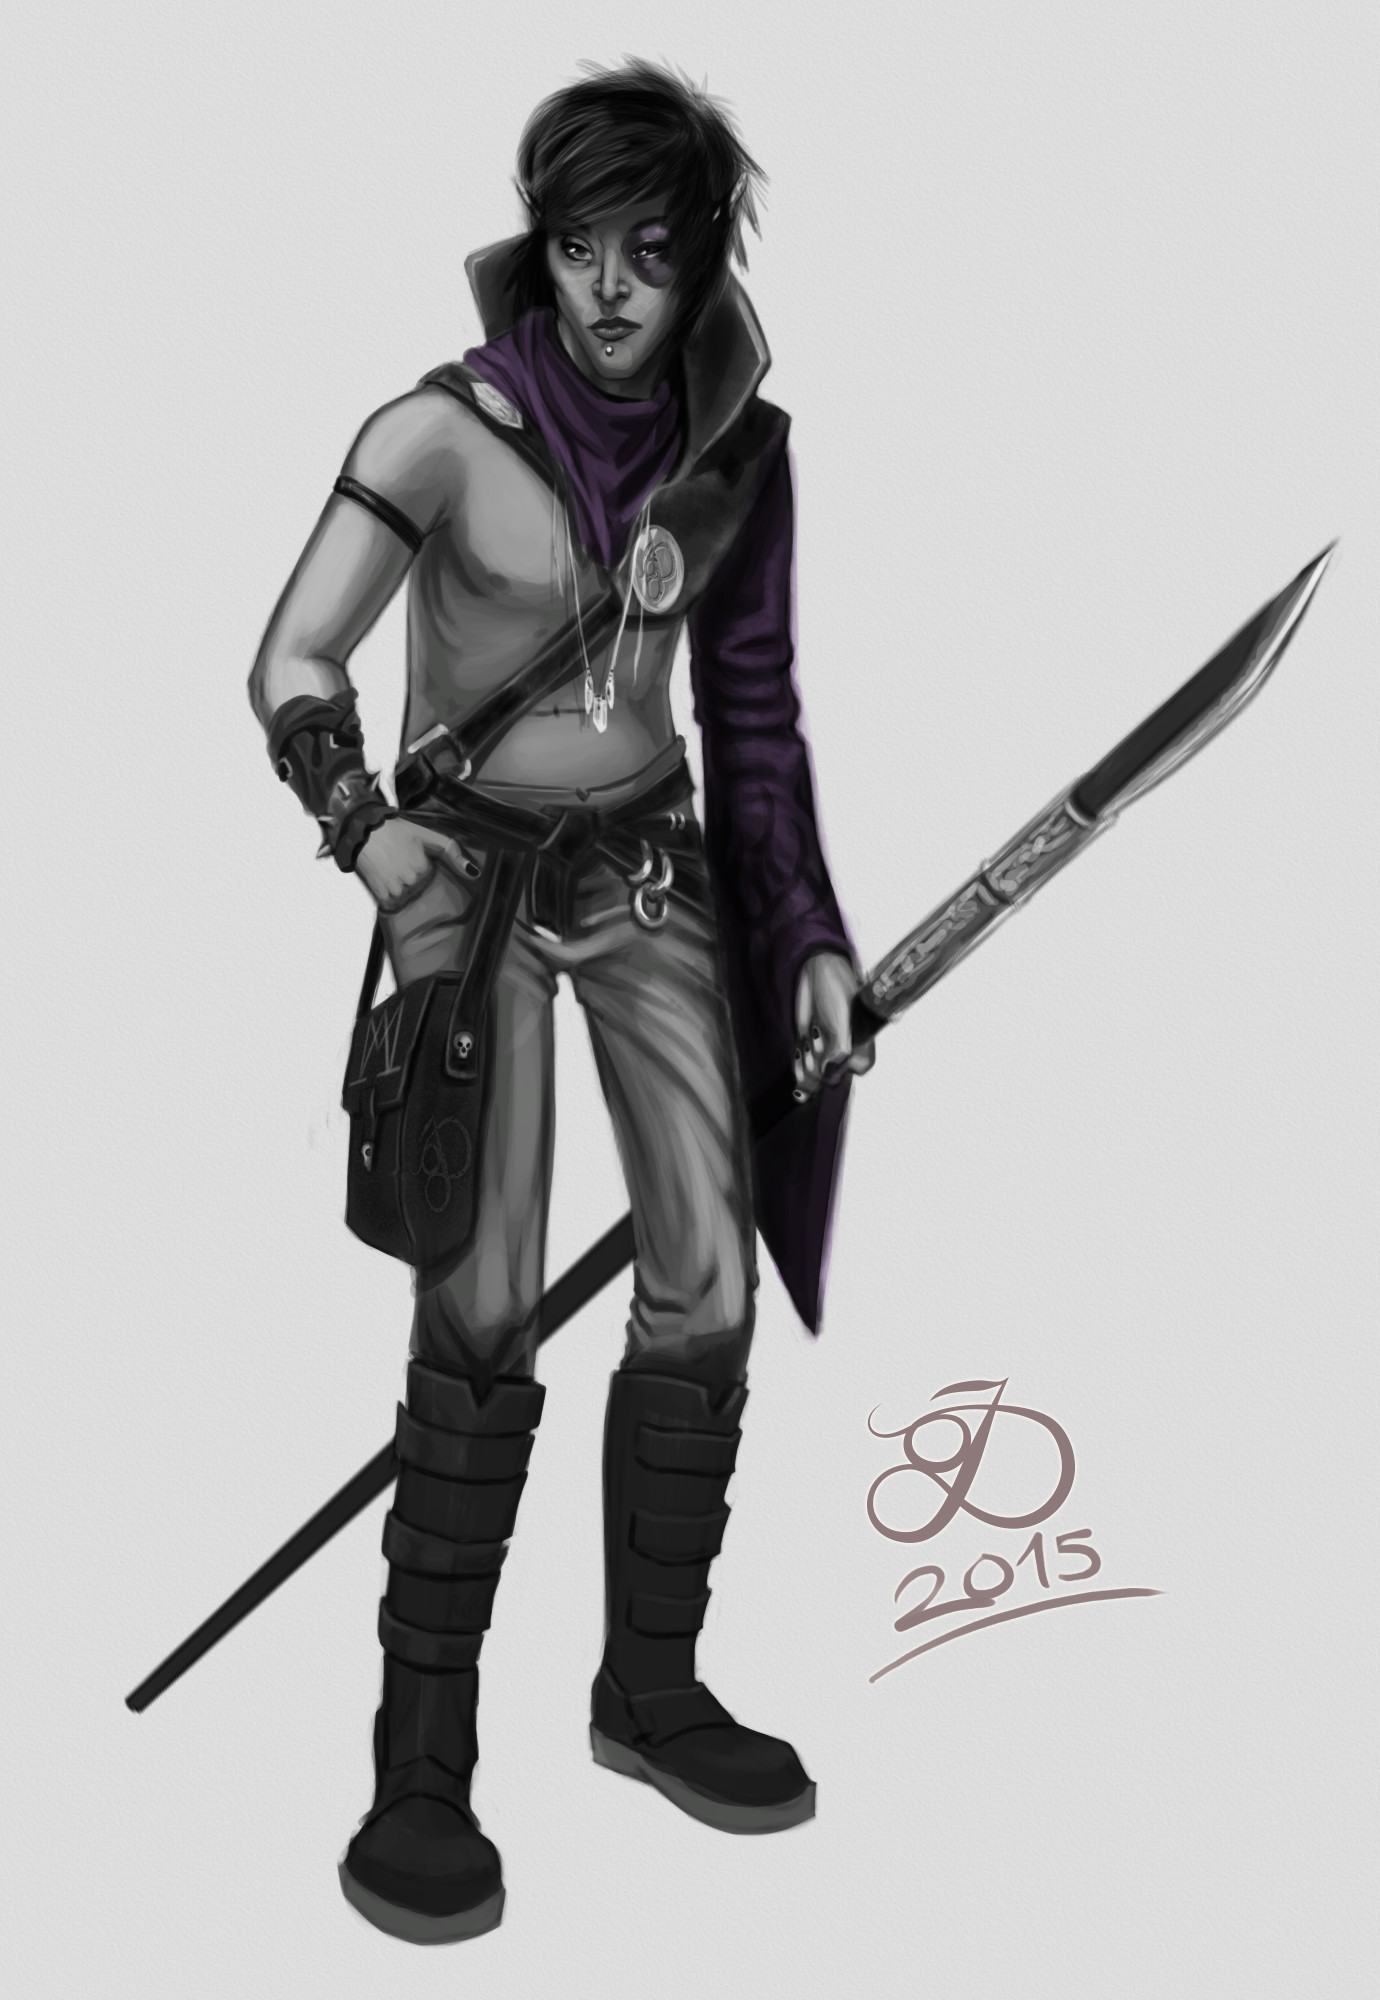 Just an emo sort of look. Sorcerers don't really wear anything on their top half as they need all wavy arm things while casting apparently.